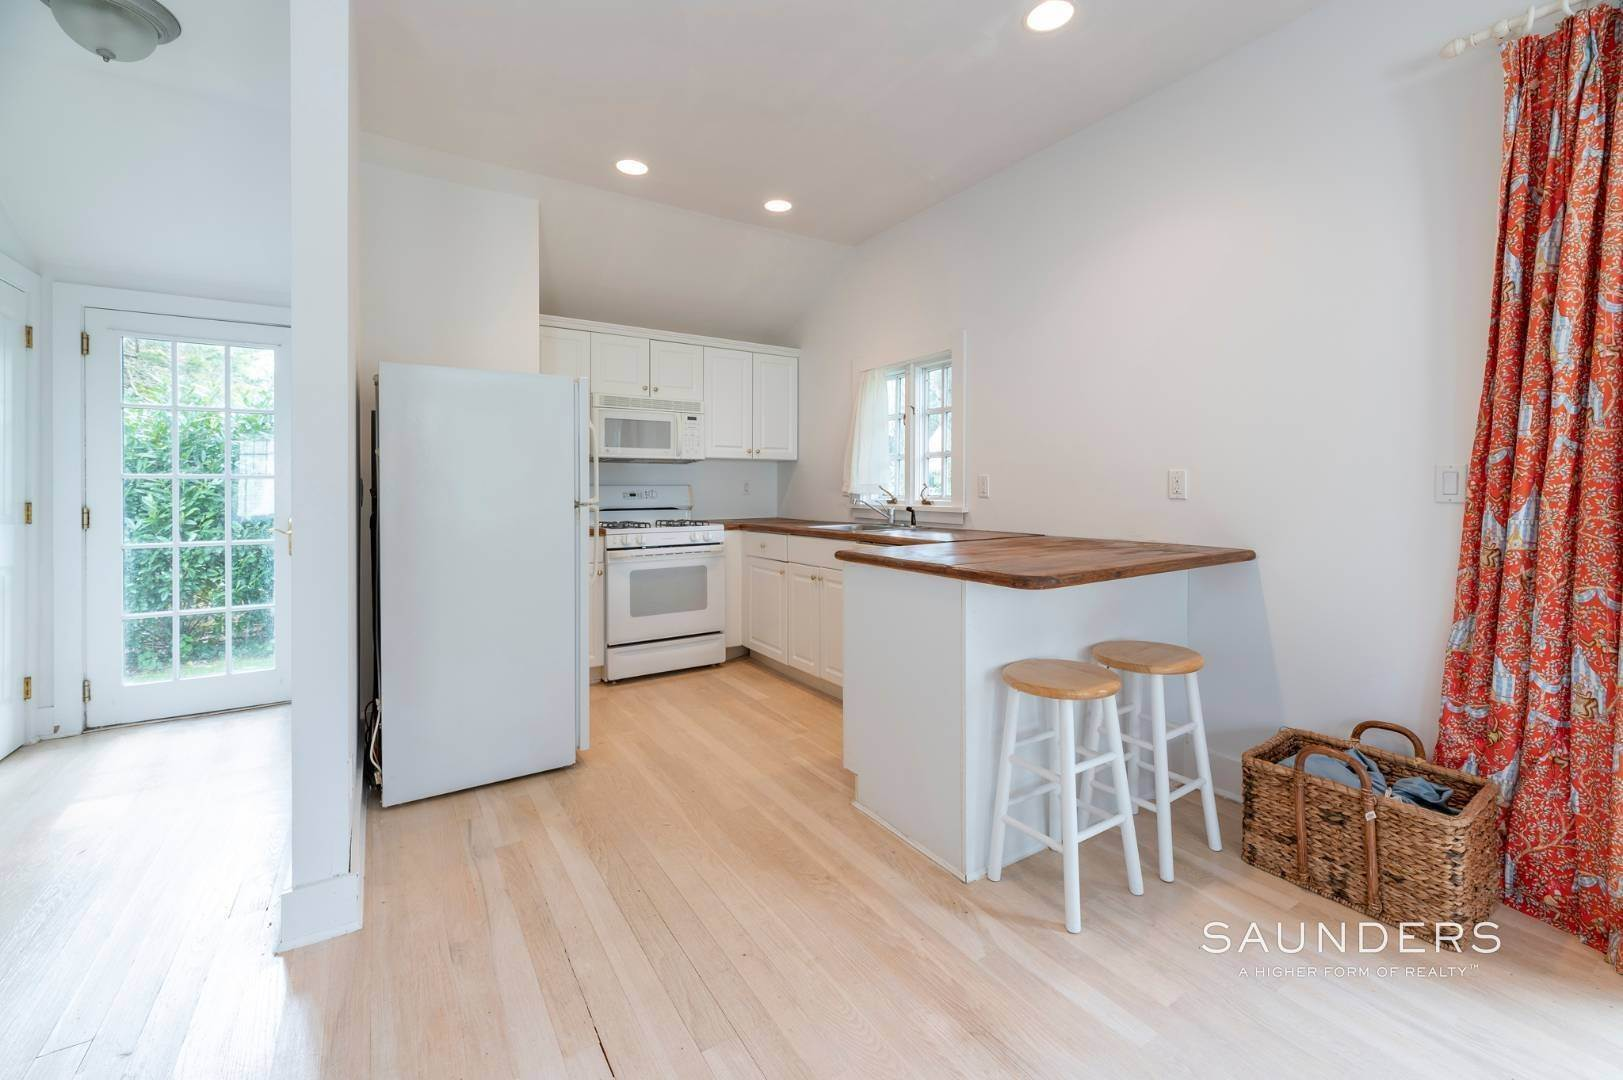 21. Single Family Homes for Sale at East Hampton Village Traditional South Of The Highway 21 Buckskill Road, East Hampton, East Hampton Town, NY 11937